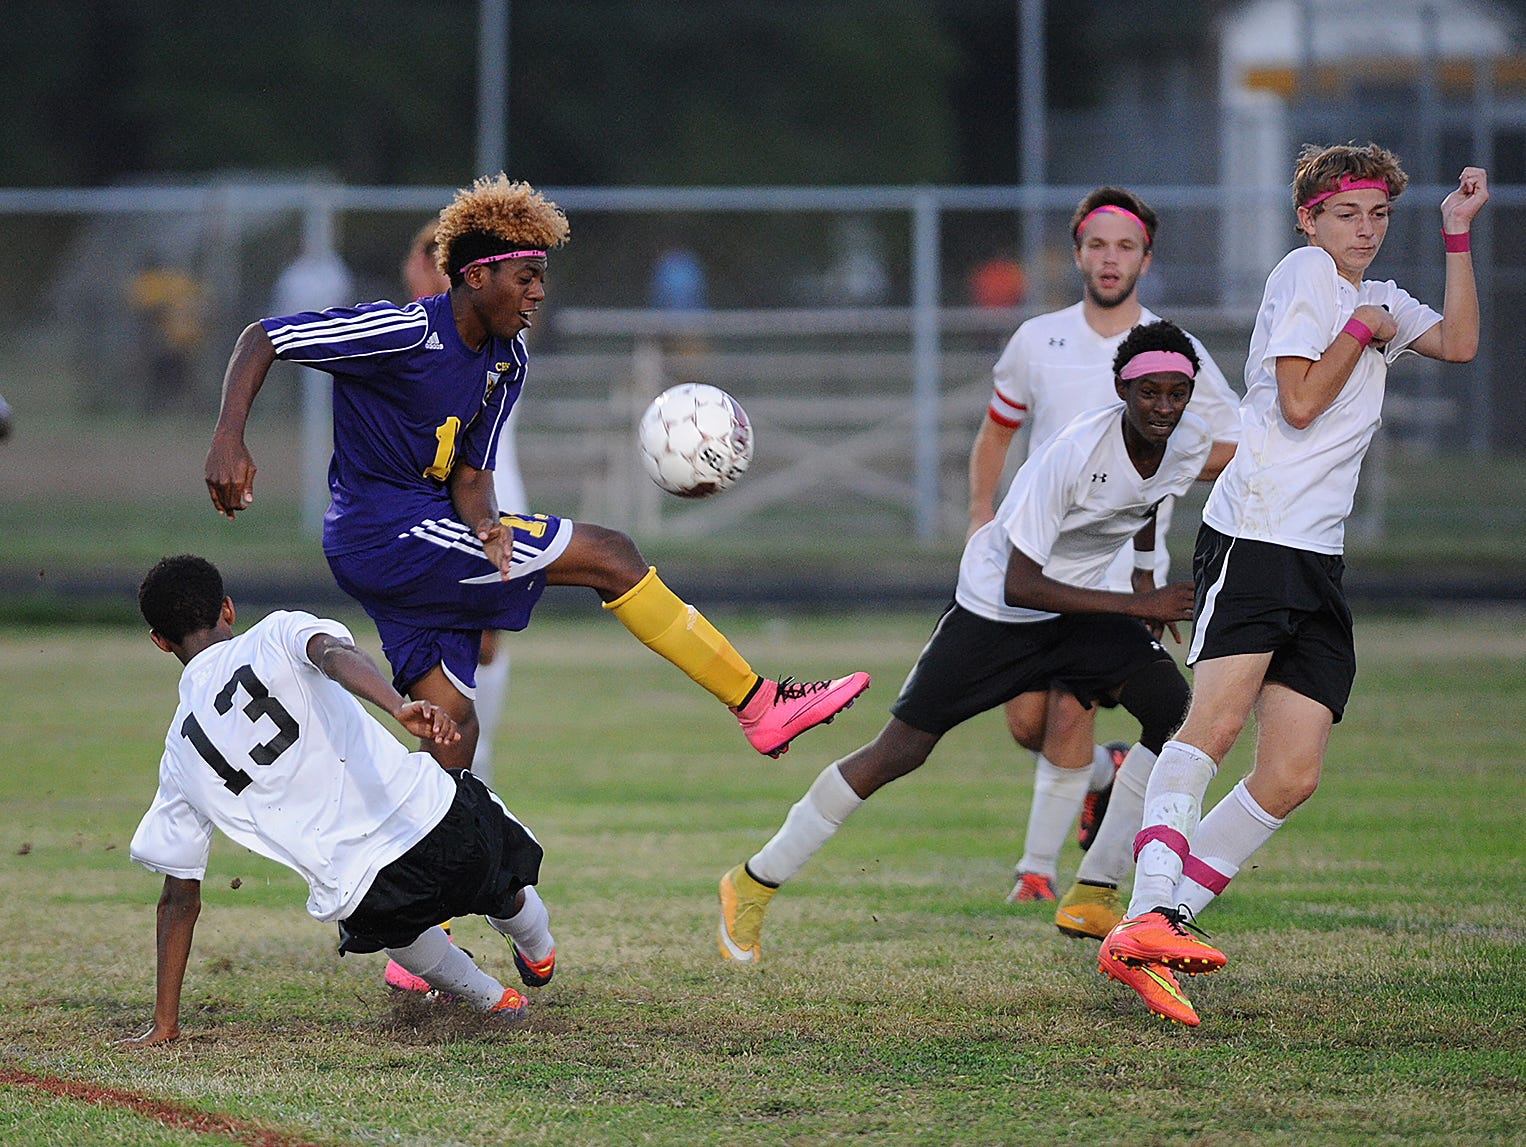 Crisfield's Johnny Taylor takes control of the ball over Washington's Sium Tsighe.